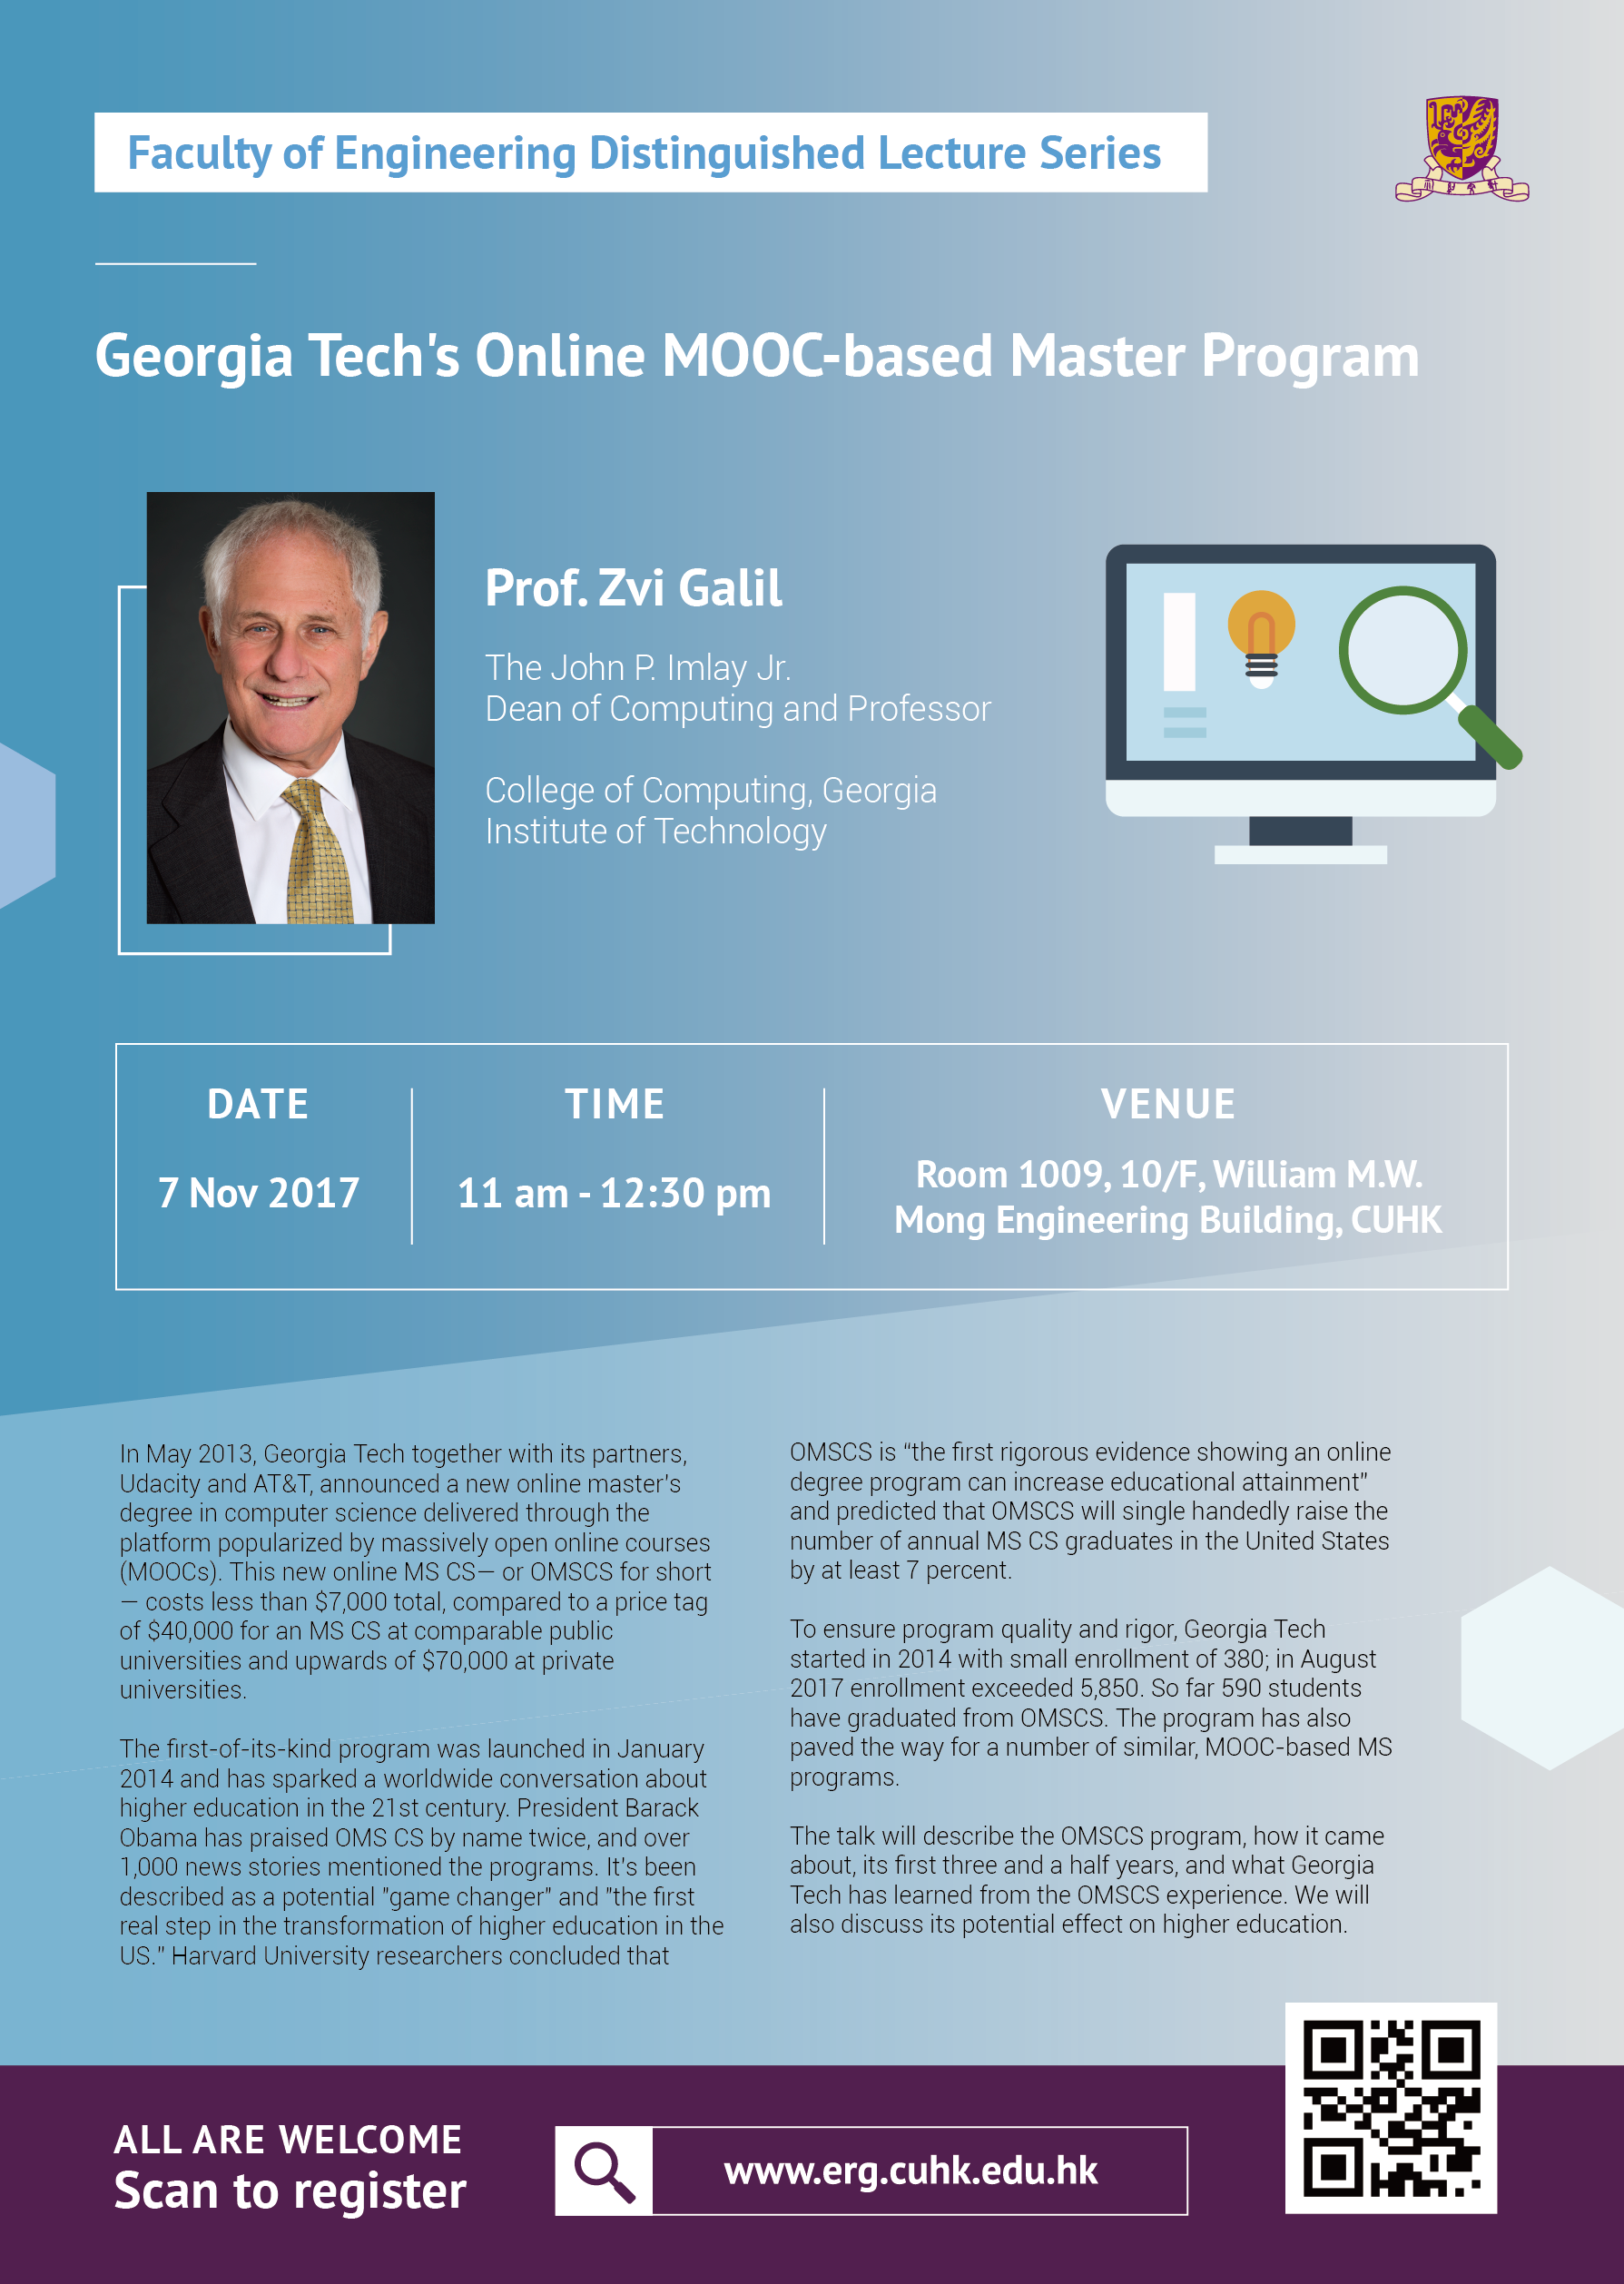 Faculty Distinguished Lecture: Georgia Tech's Online MOOC-based